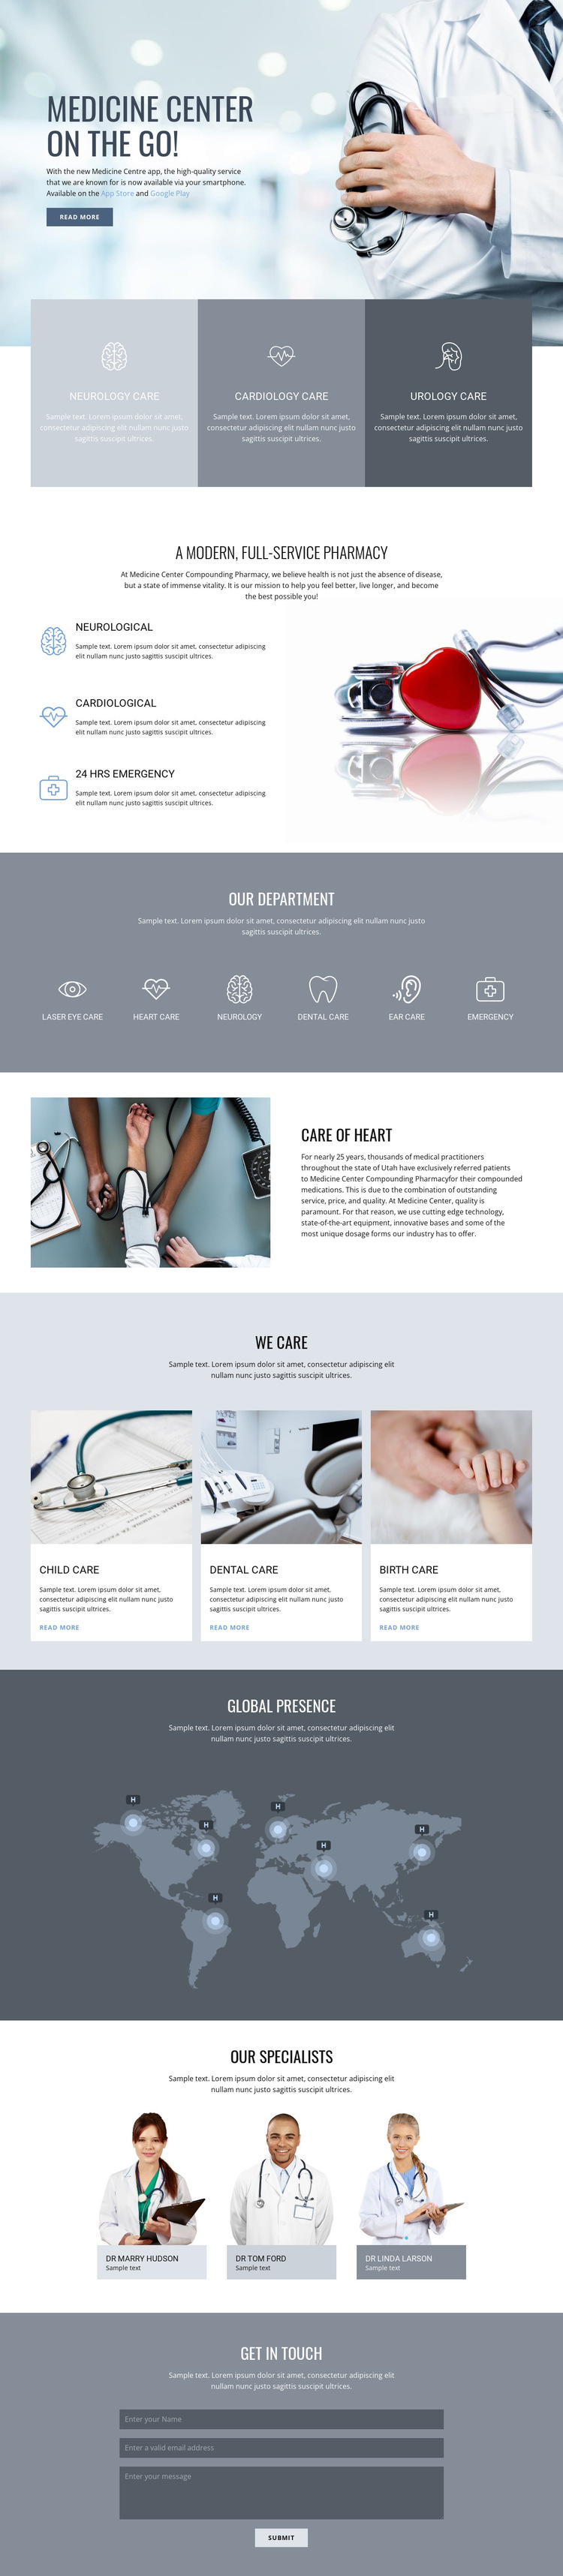 Center of quality medicine HTML5 Template